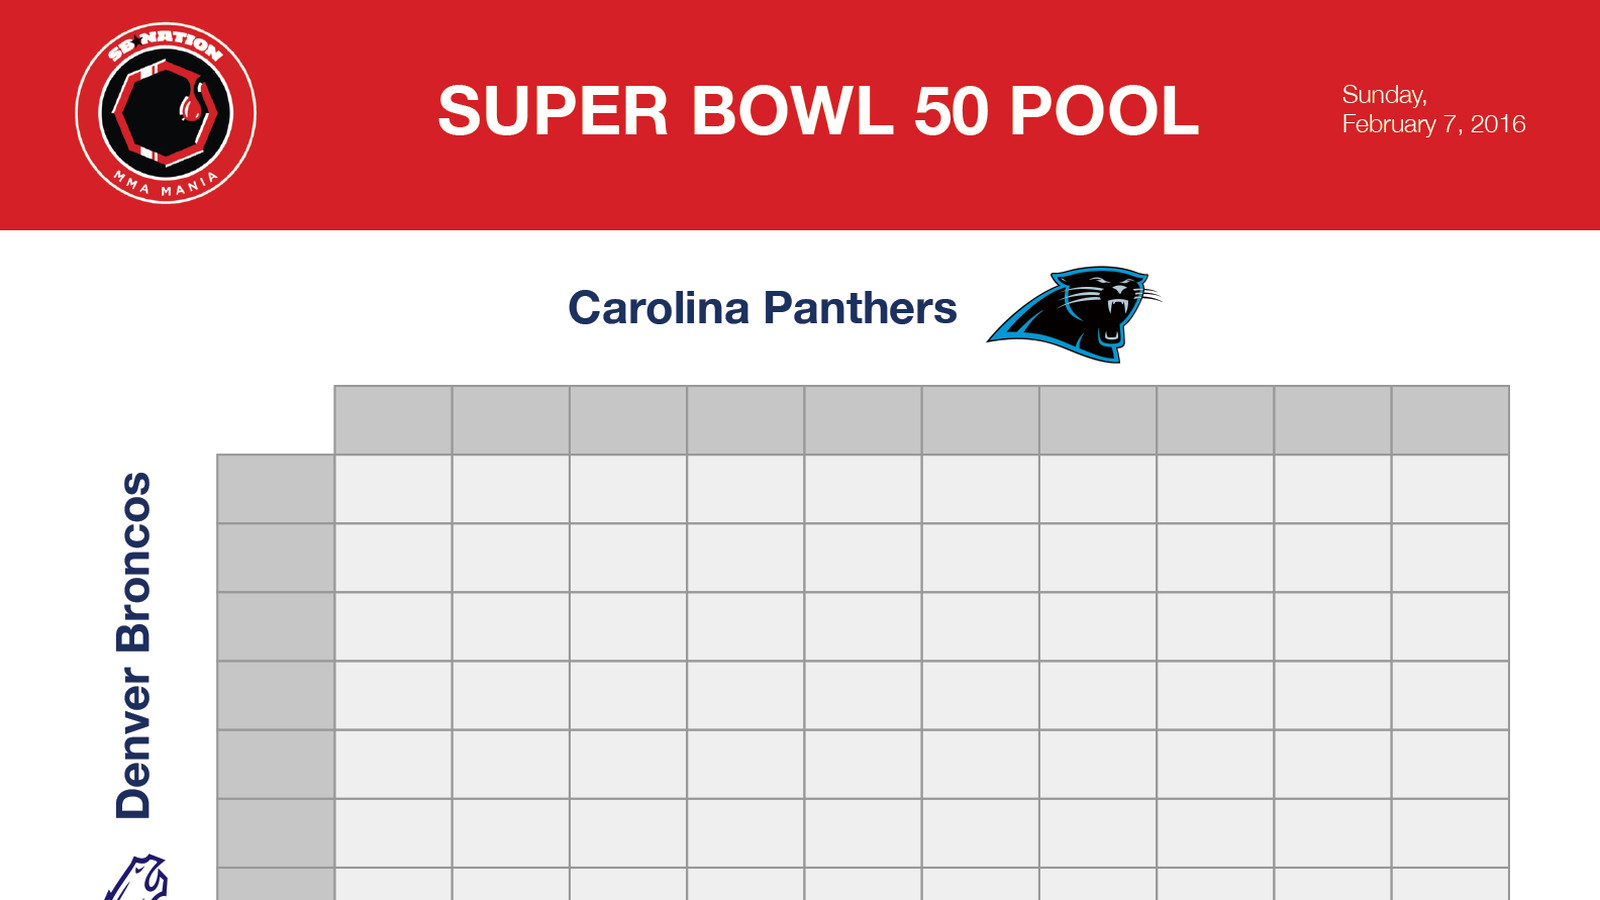 sportsbook business carolina panthers scores and schedule